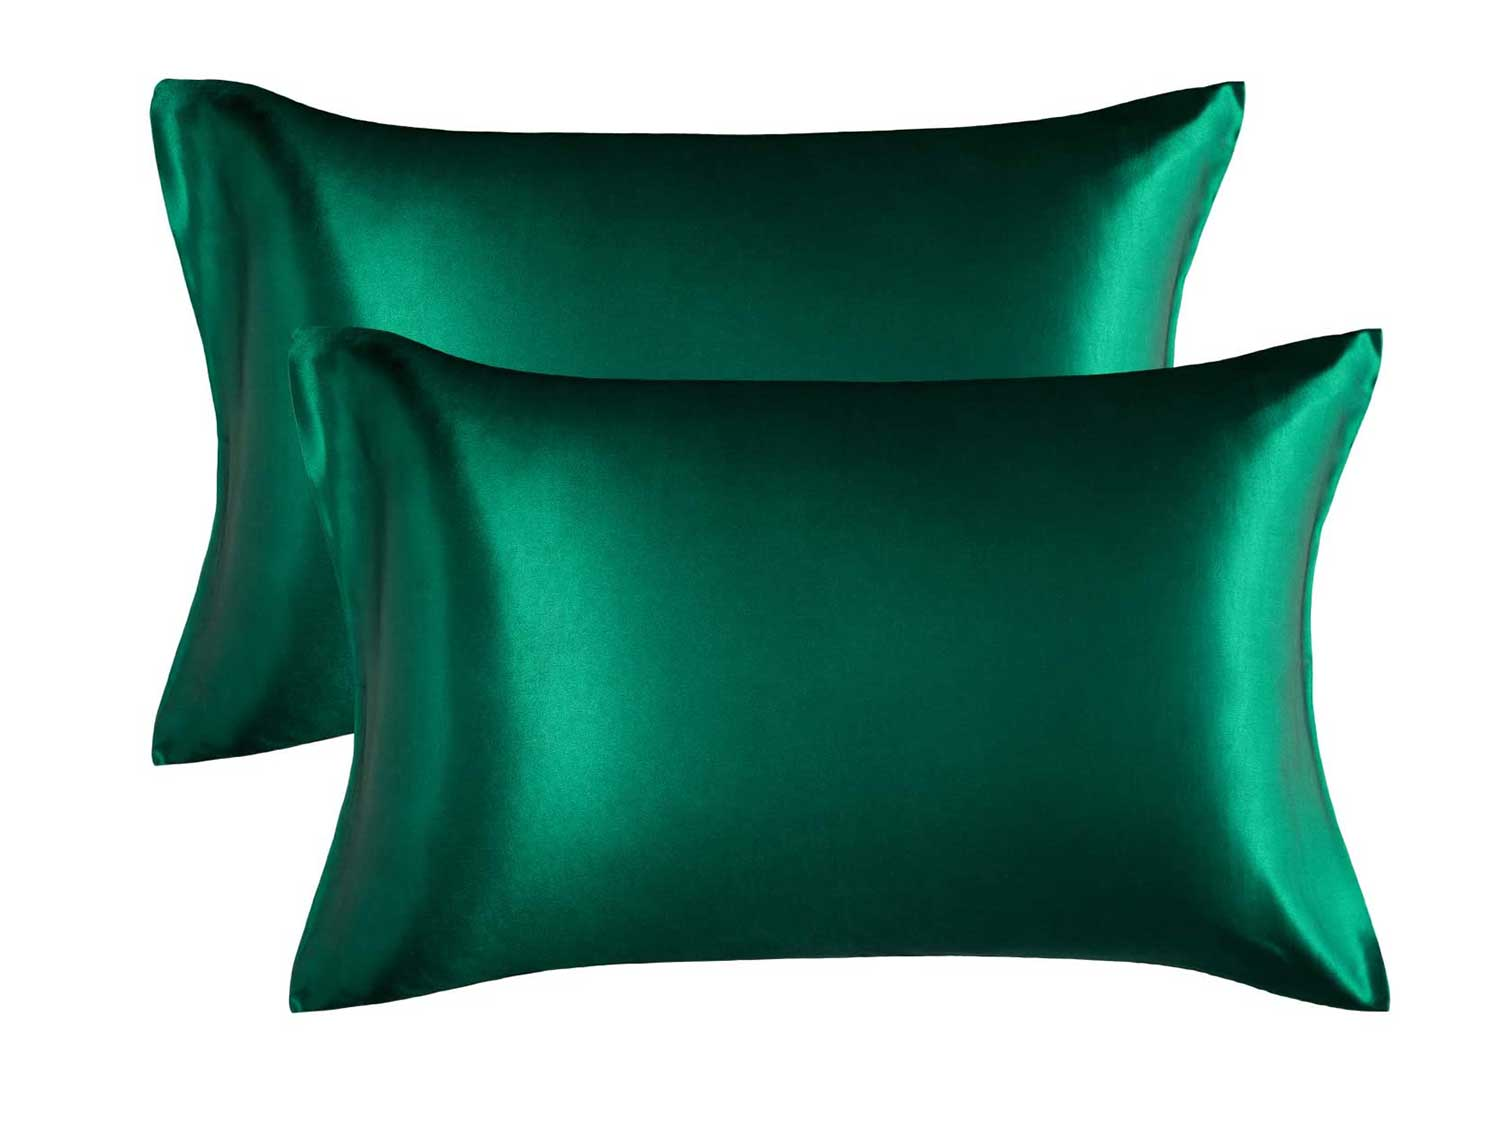 Bedsure Satin King Size Pillow Cases Set of 2 , Dark Green, 20x40 inches - Pillowcase for Hair and Skin - Satin Pillow Covers with Envelope Closure